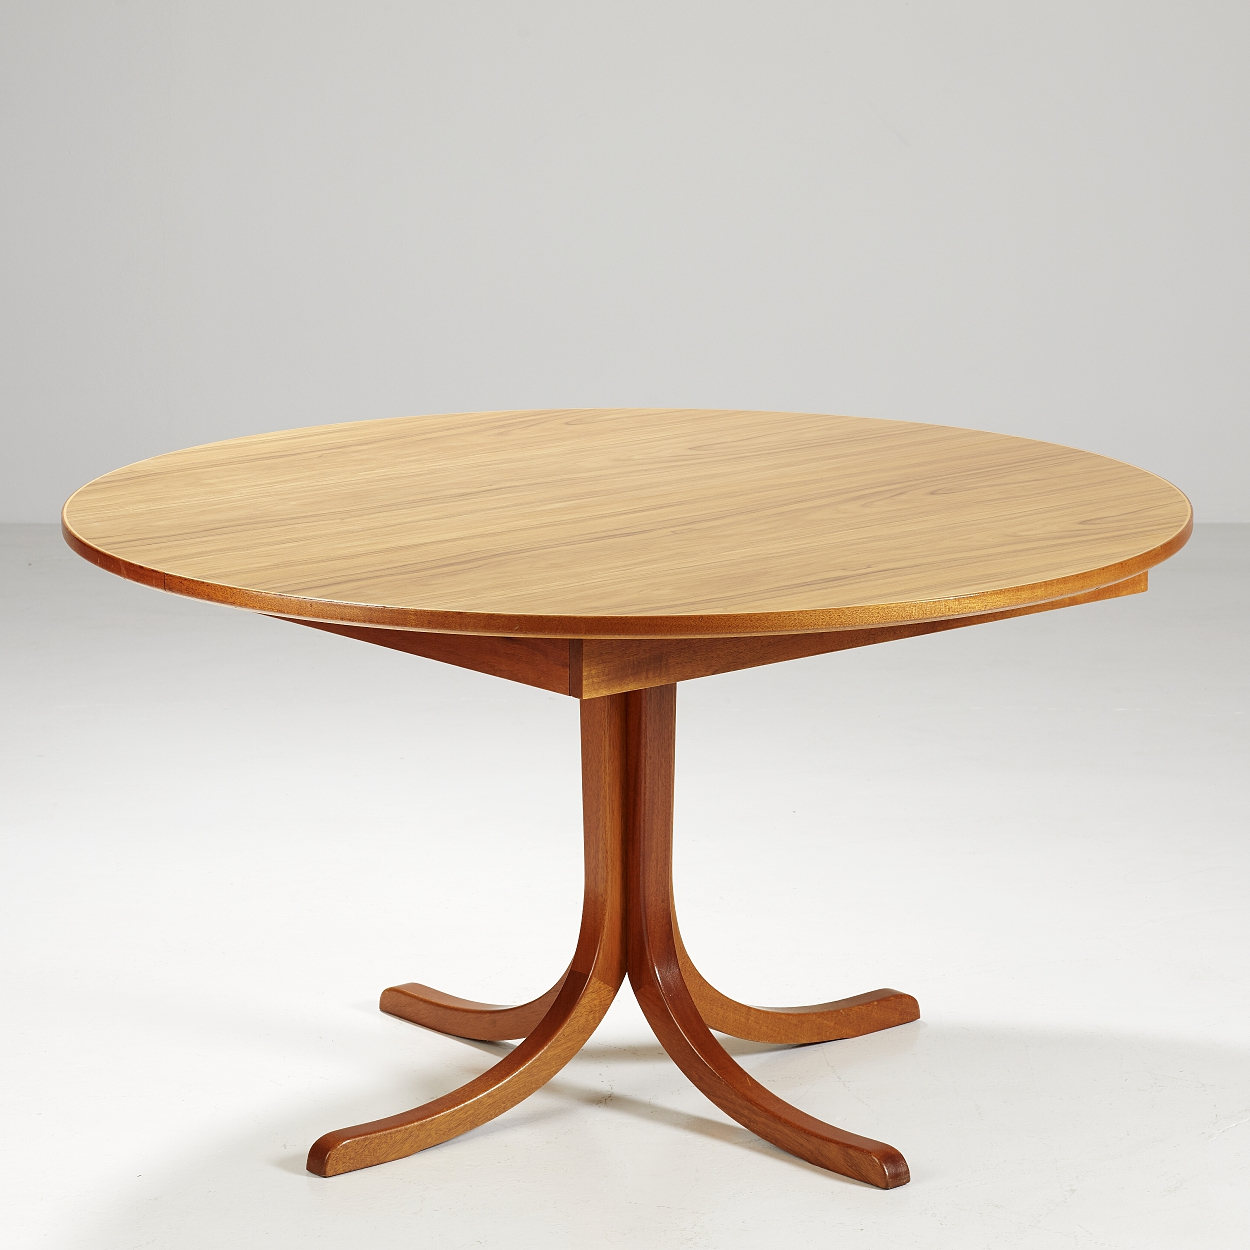 A Josef Frank dining table